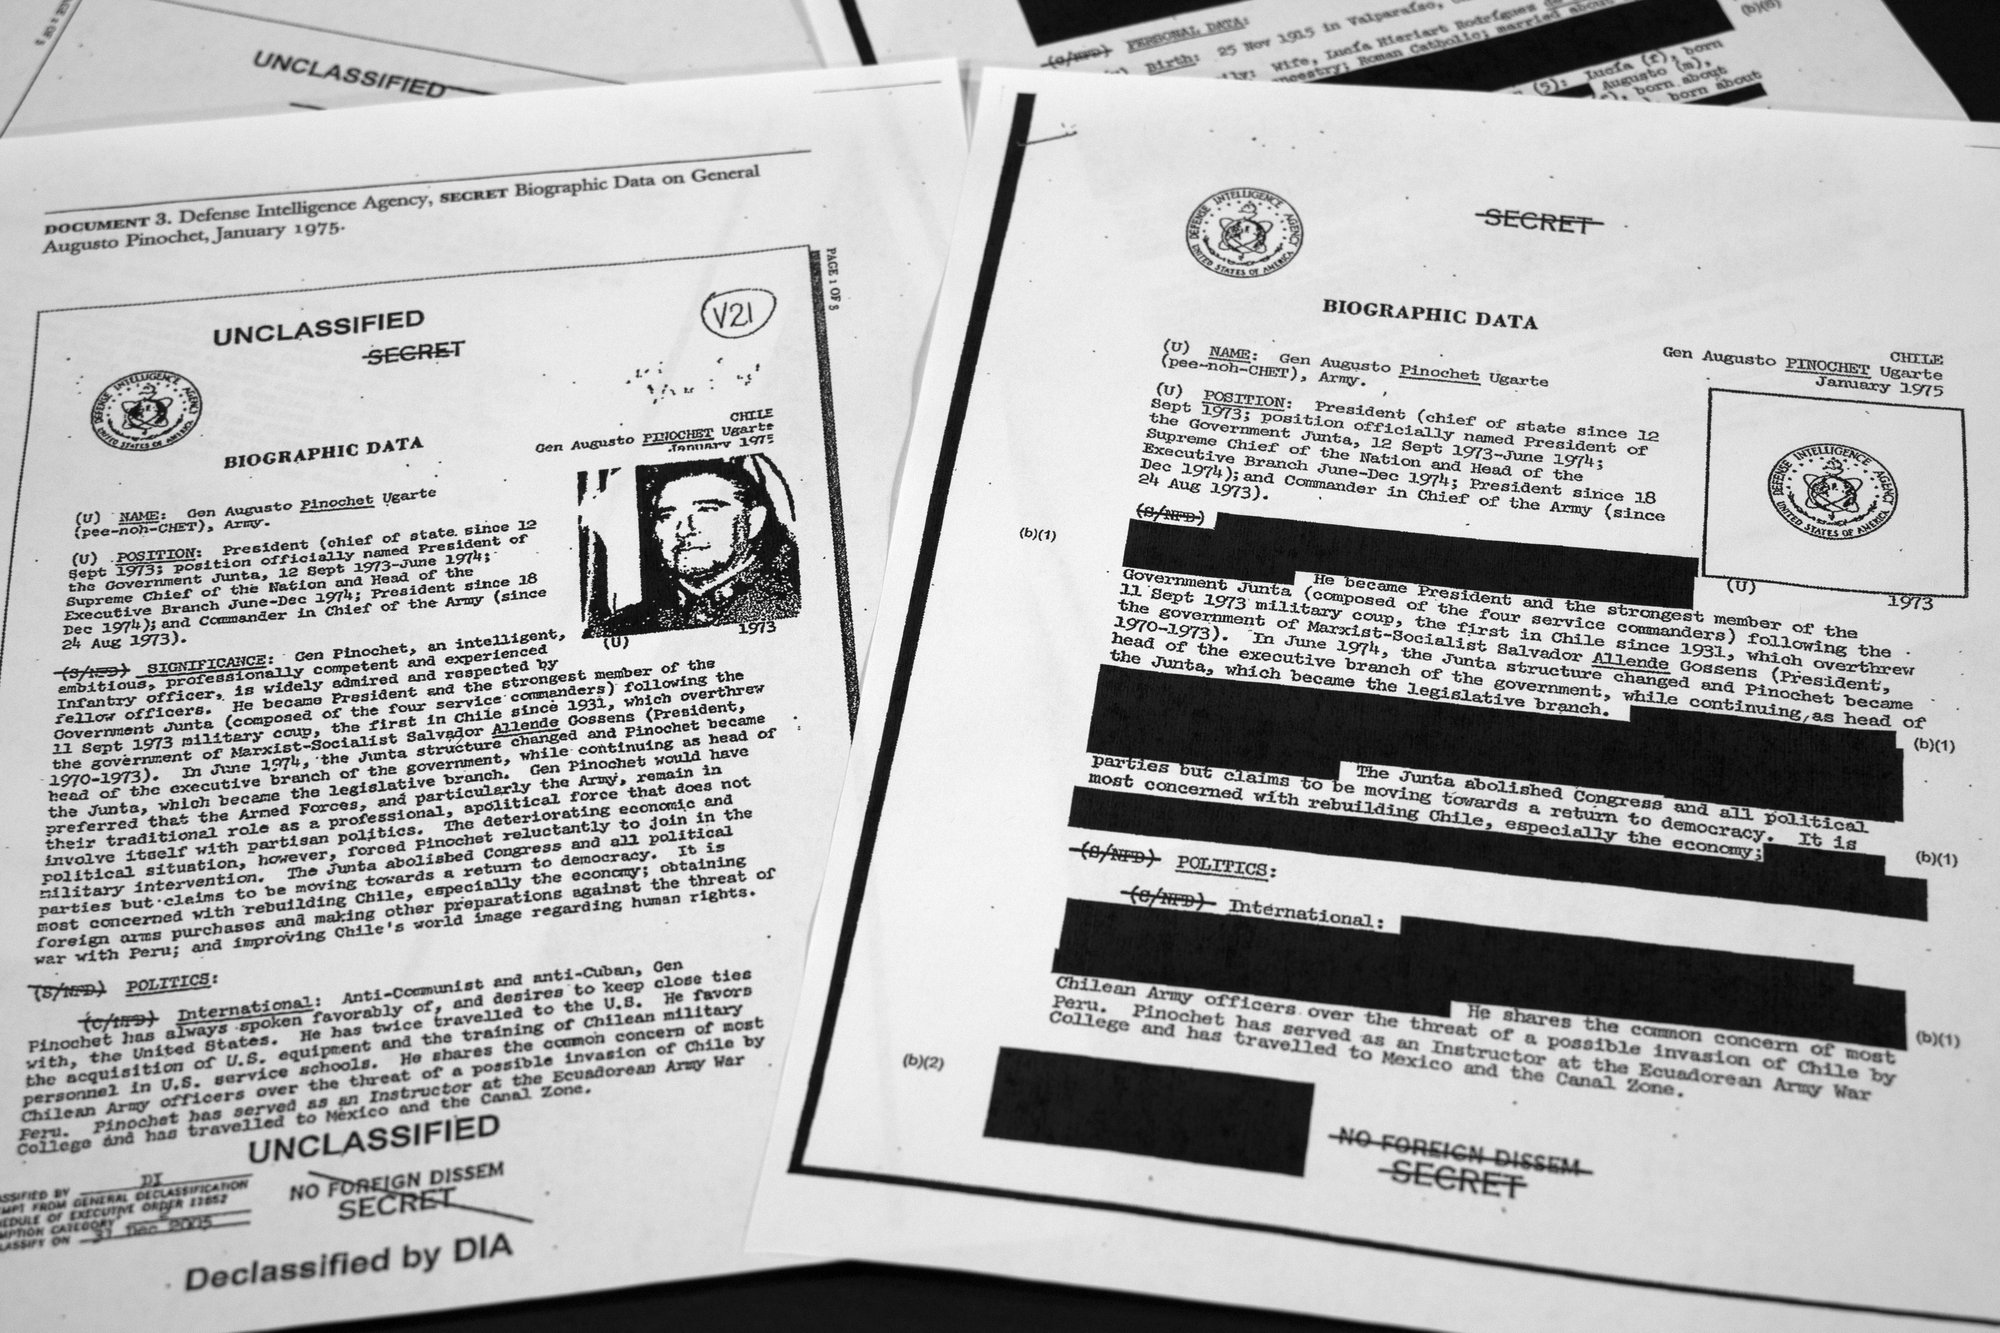 Unredacted and Redacted Govt. Reports